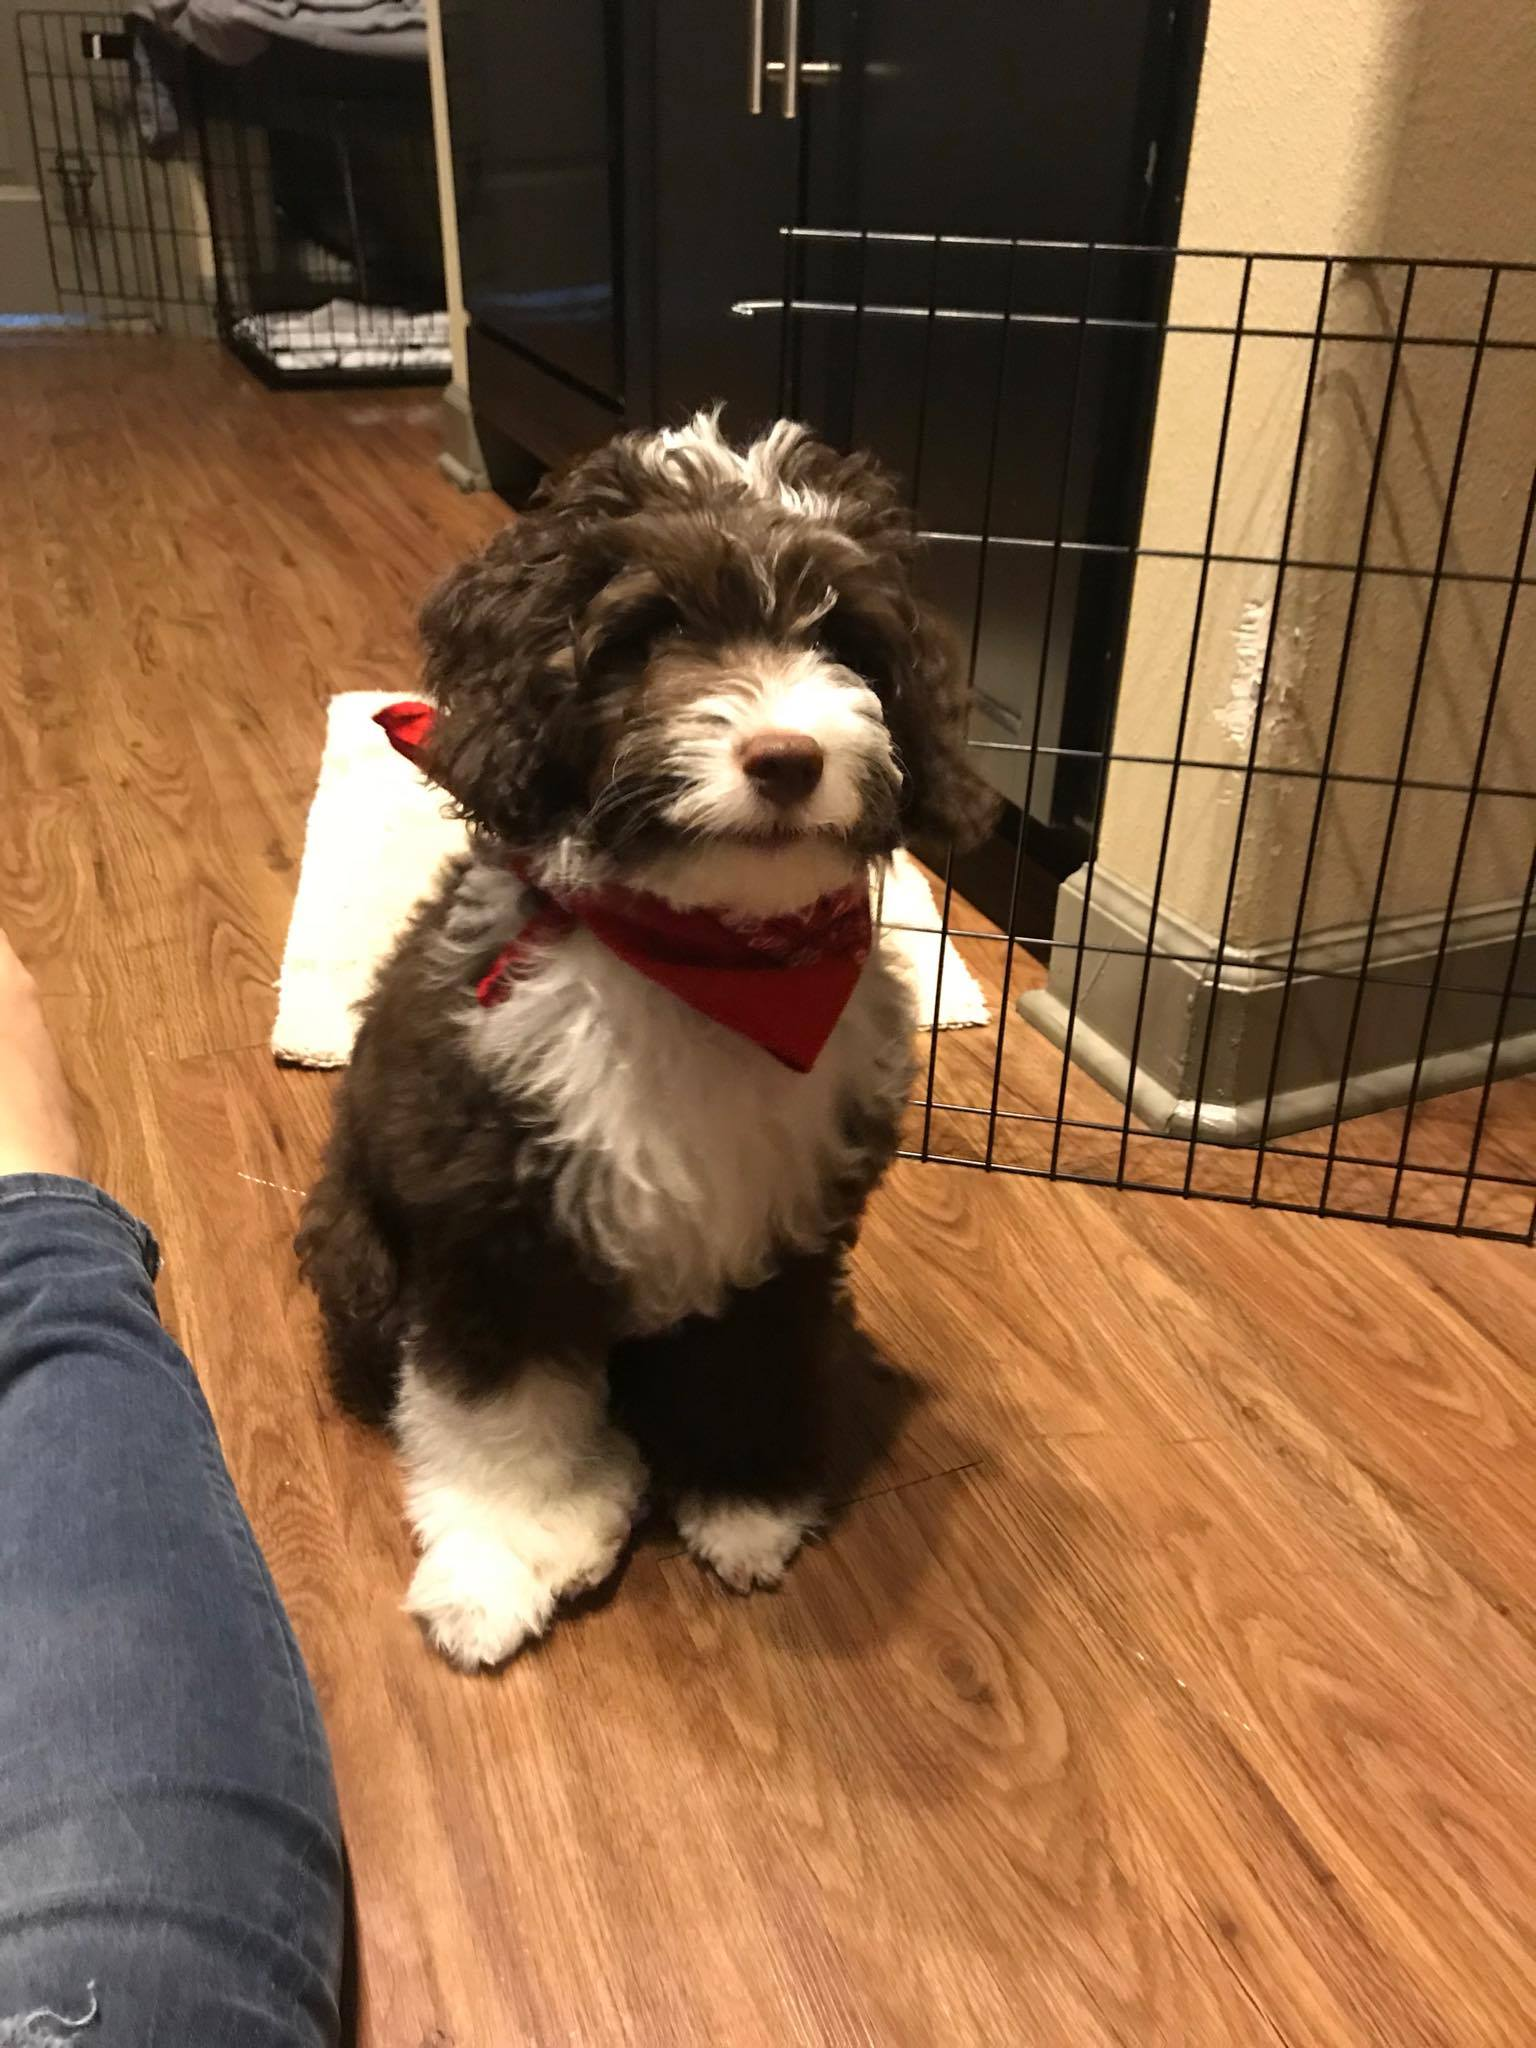 POTTY TRAINING AN AUSSIEDOODLE PUPPY - 7 DAY CRATE TRAINING SCHEDULE- CHOCOLATE AND WHITE BI F1B MINI AUSSIEDOODLE